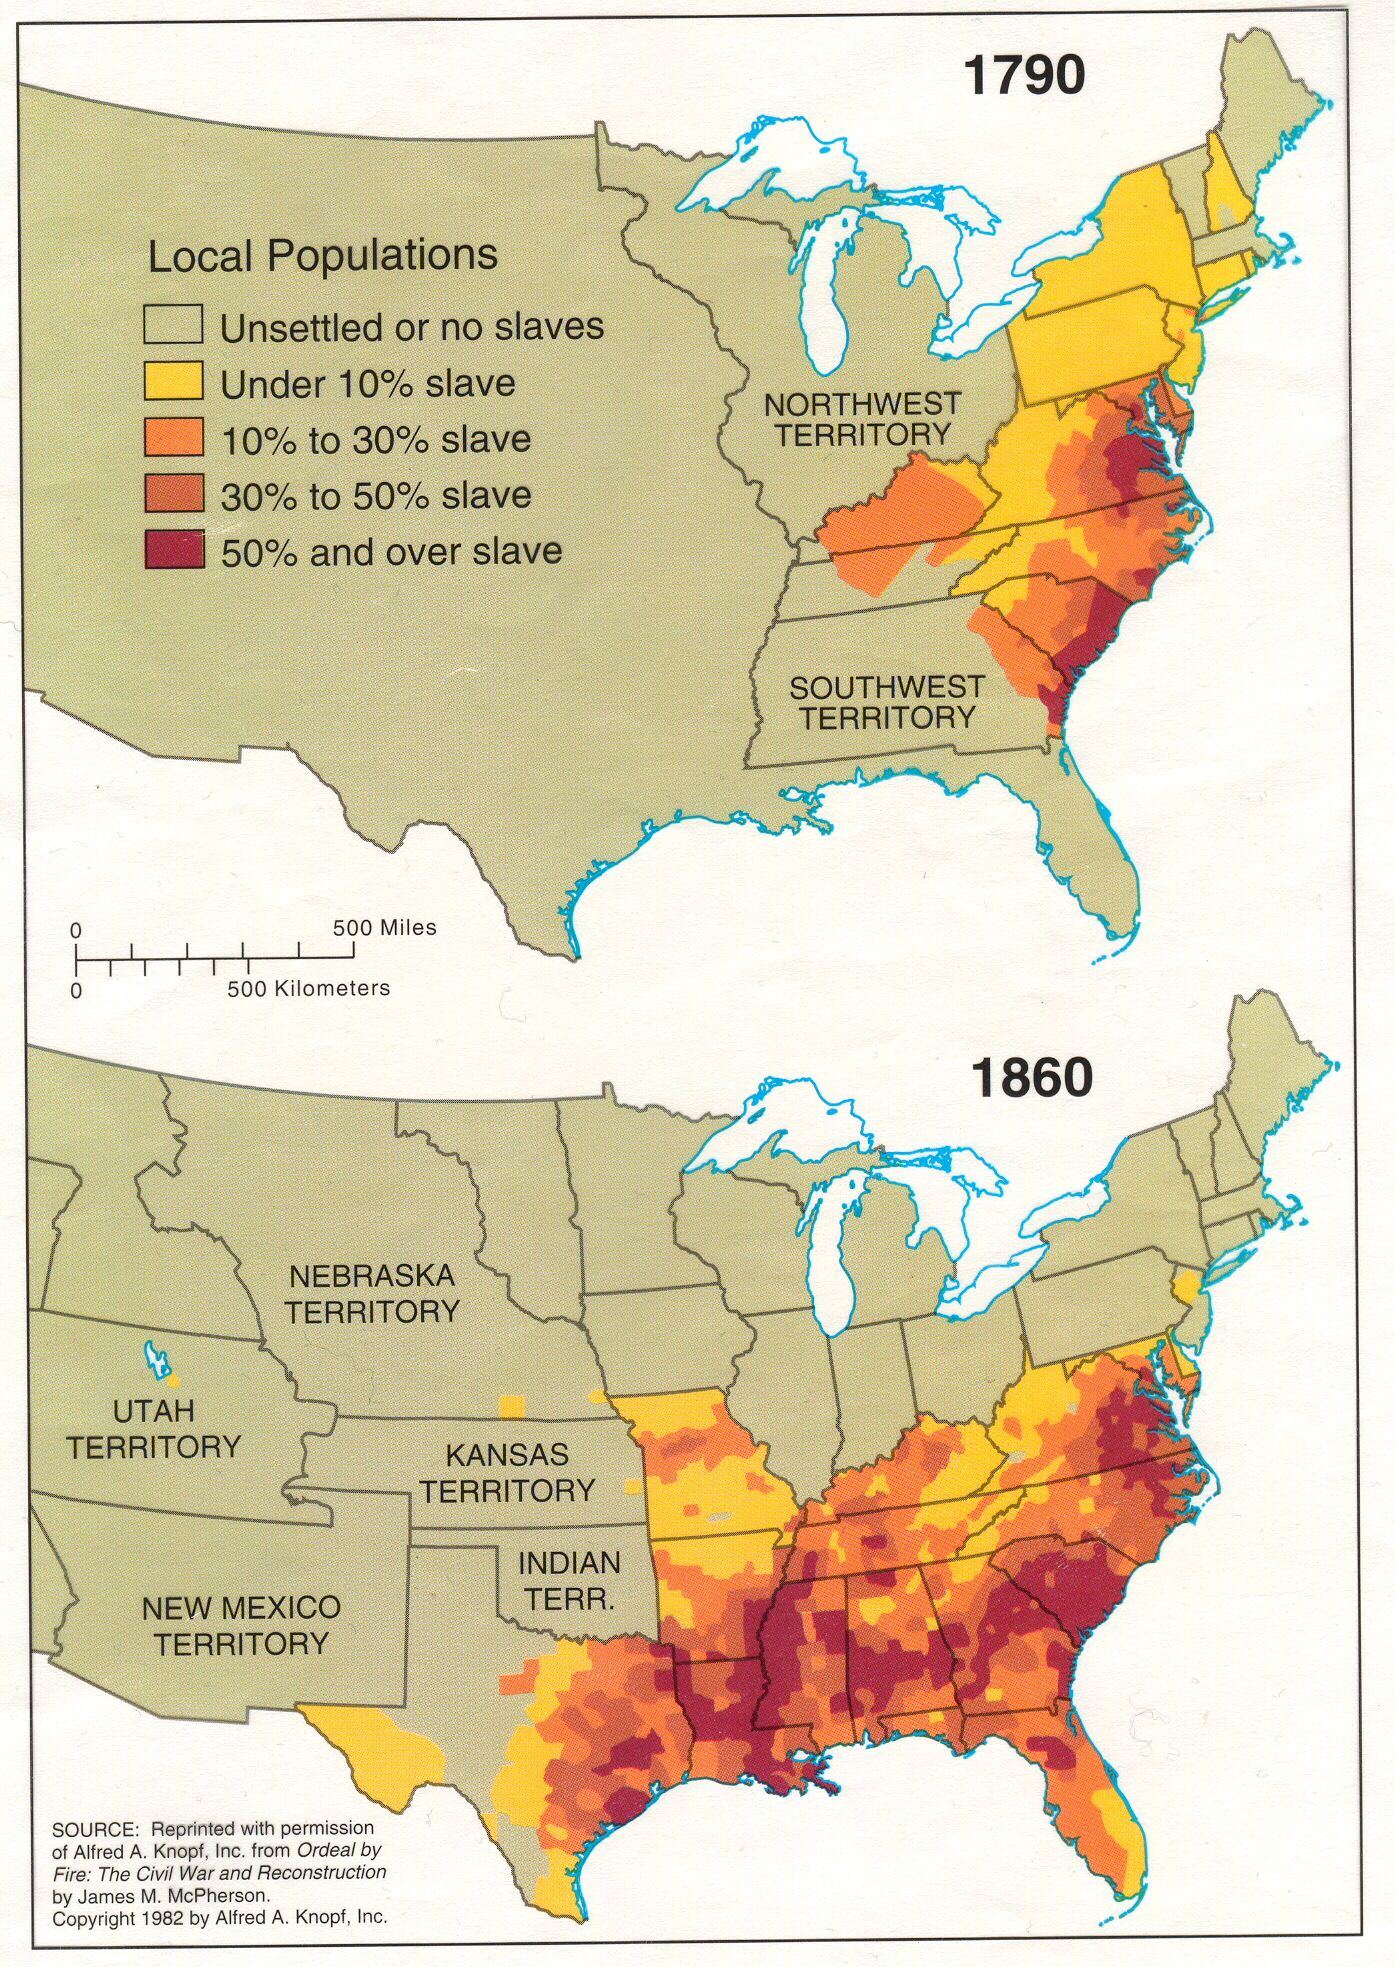 Maps That Explain America Civil Wars American Civil War And - Us population density map 1790